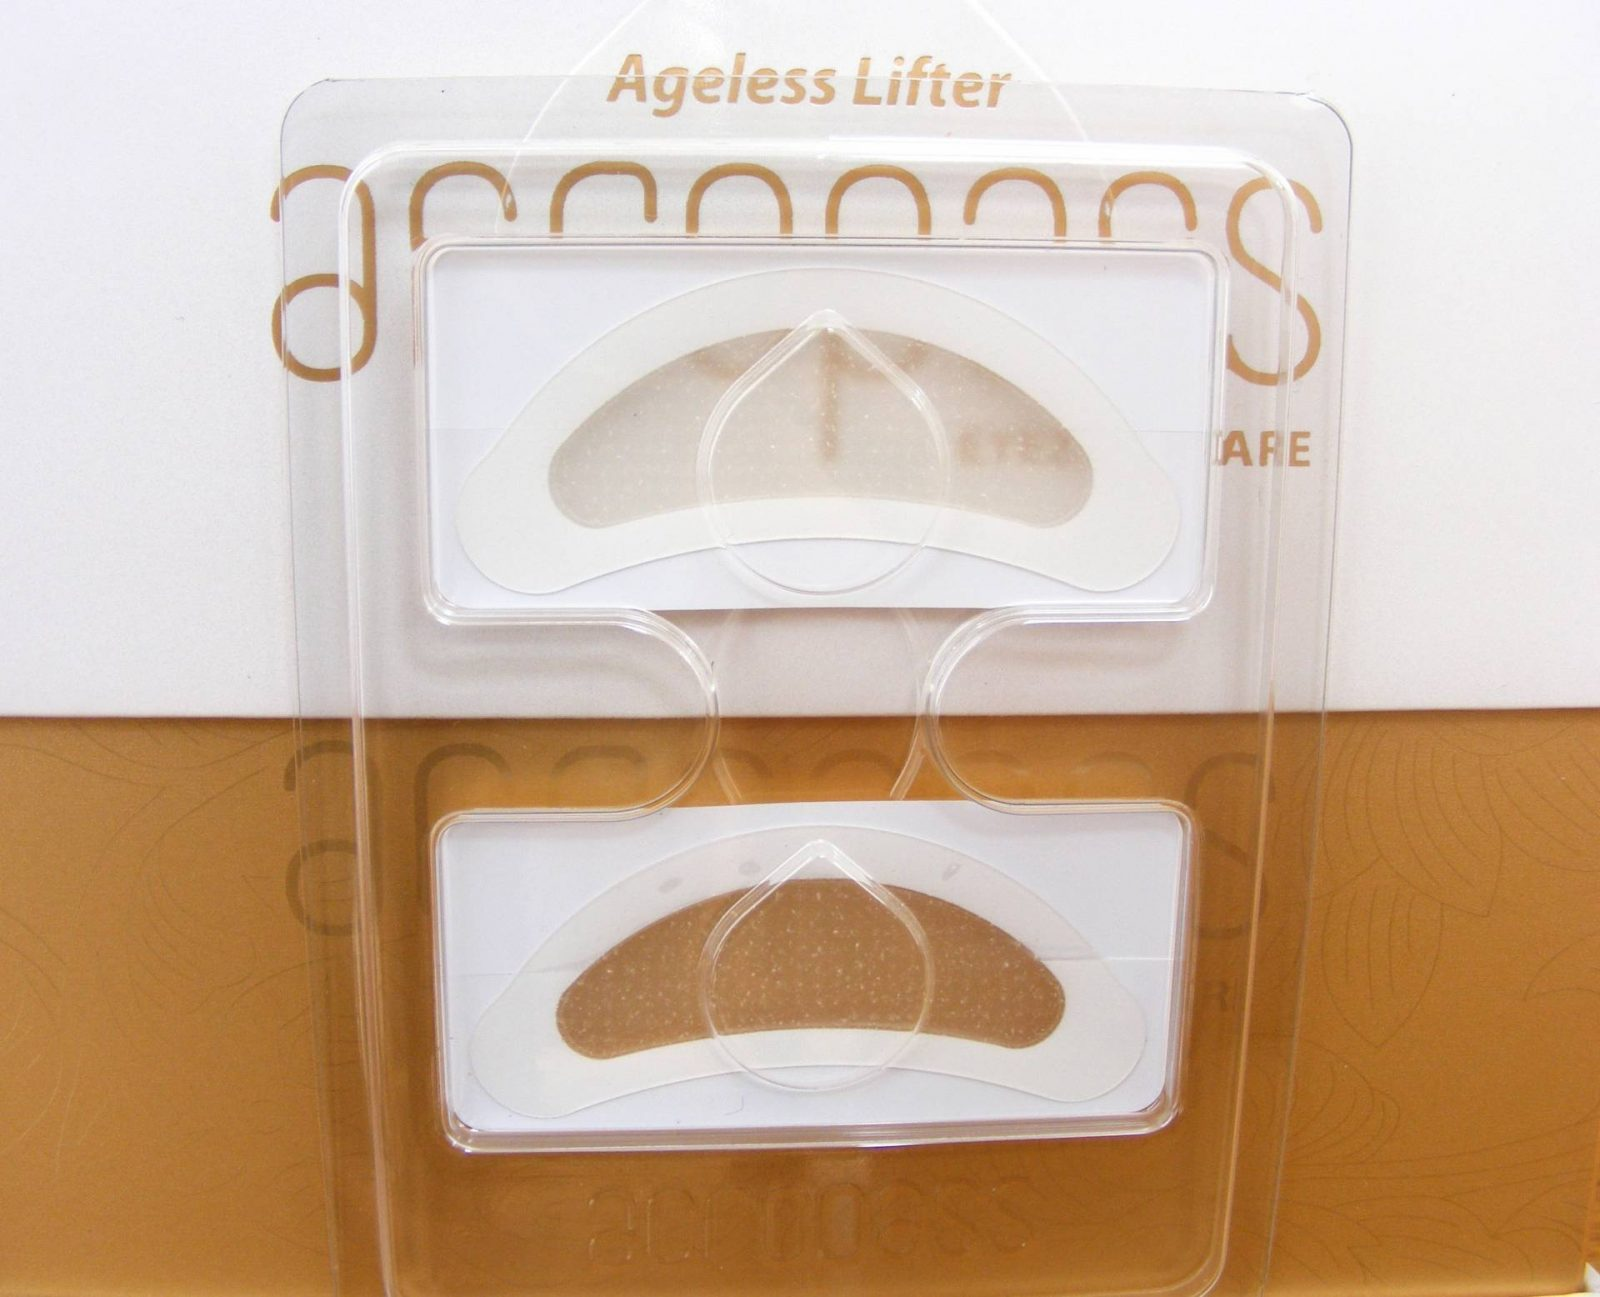 Acropass Ageless Lifter hyaluronic eye patches